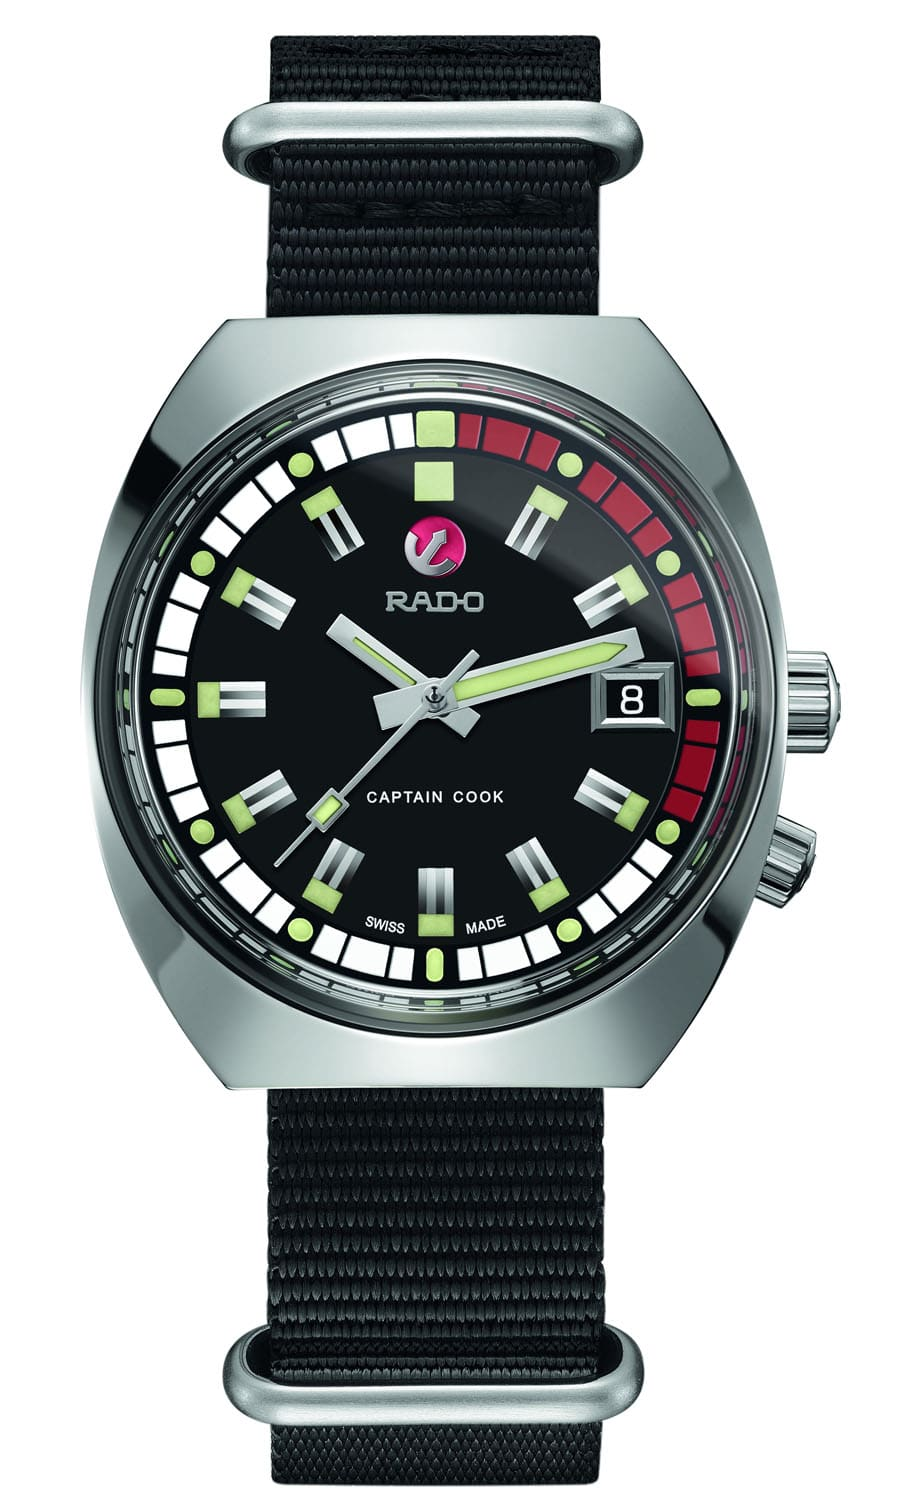 Rado Tradition Captain Cook MKII Automatic Limited Edition mit Nato-Band